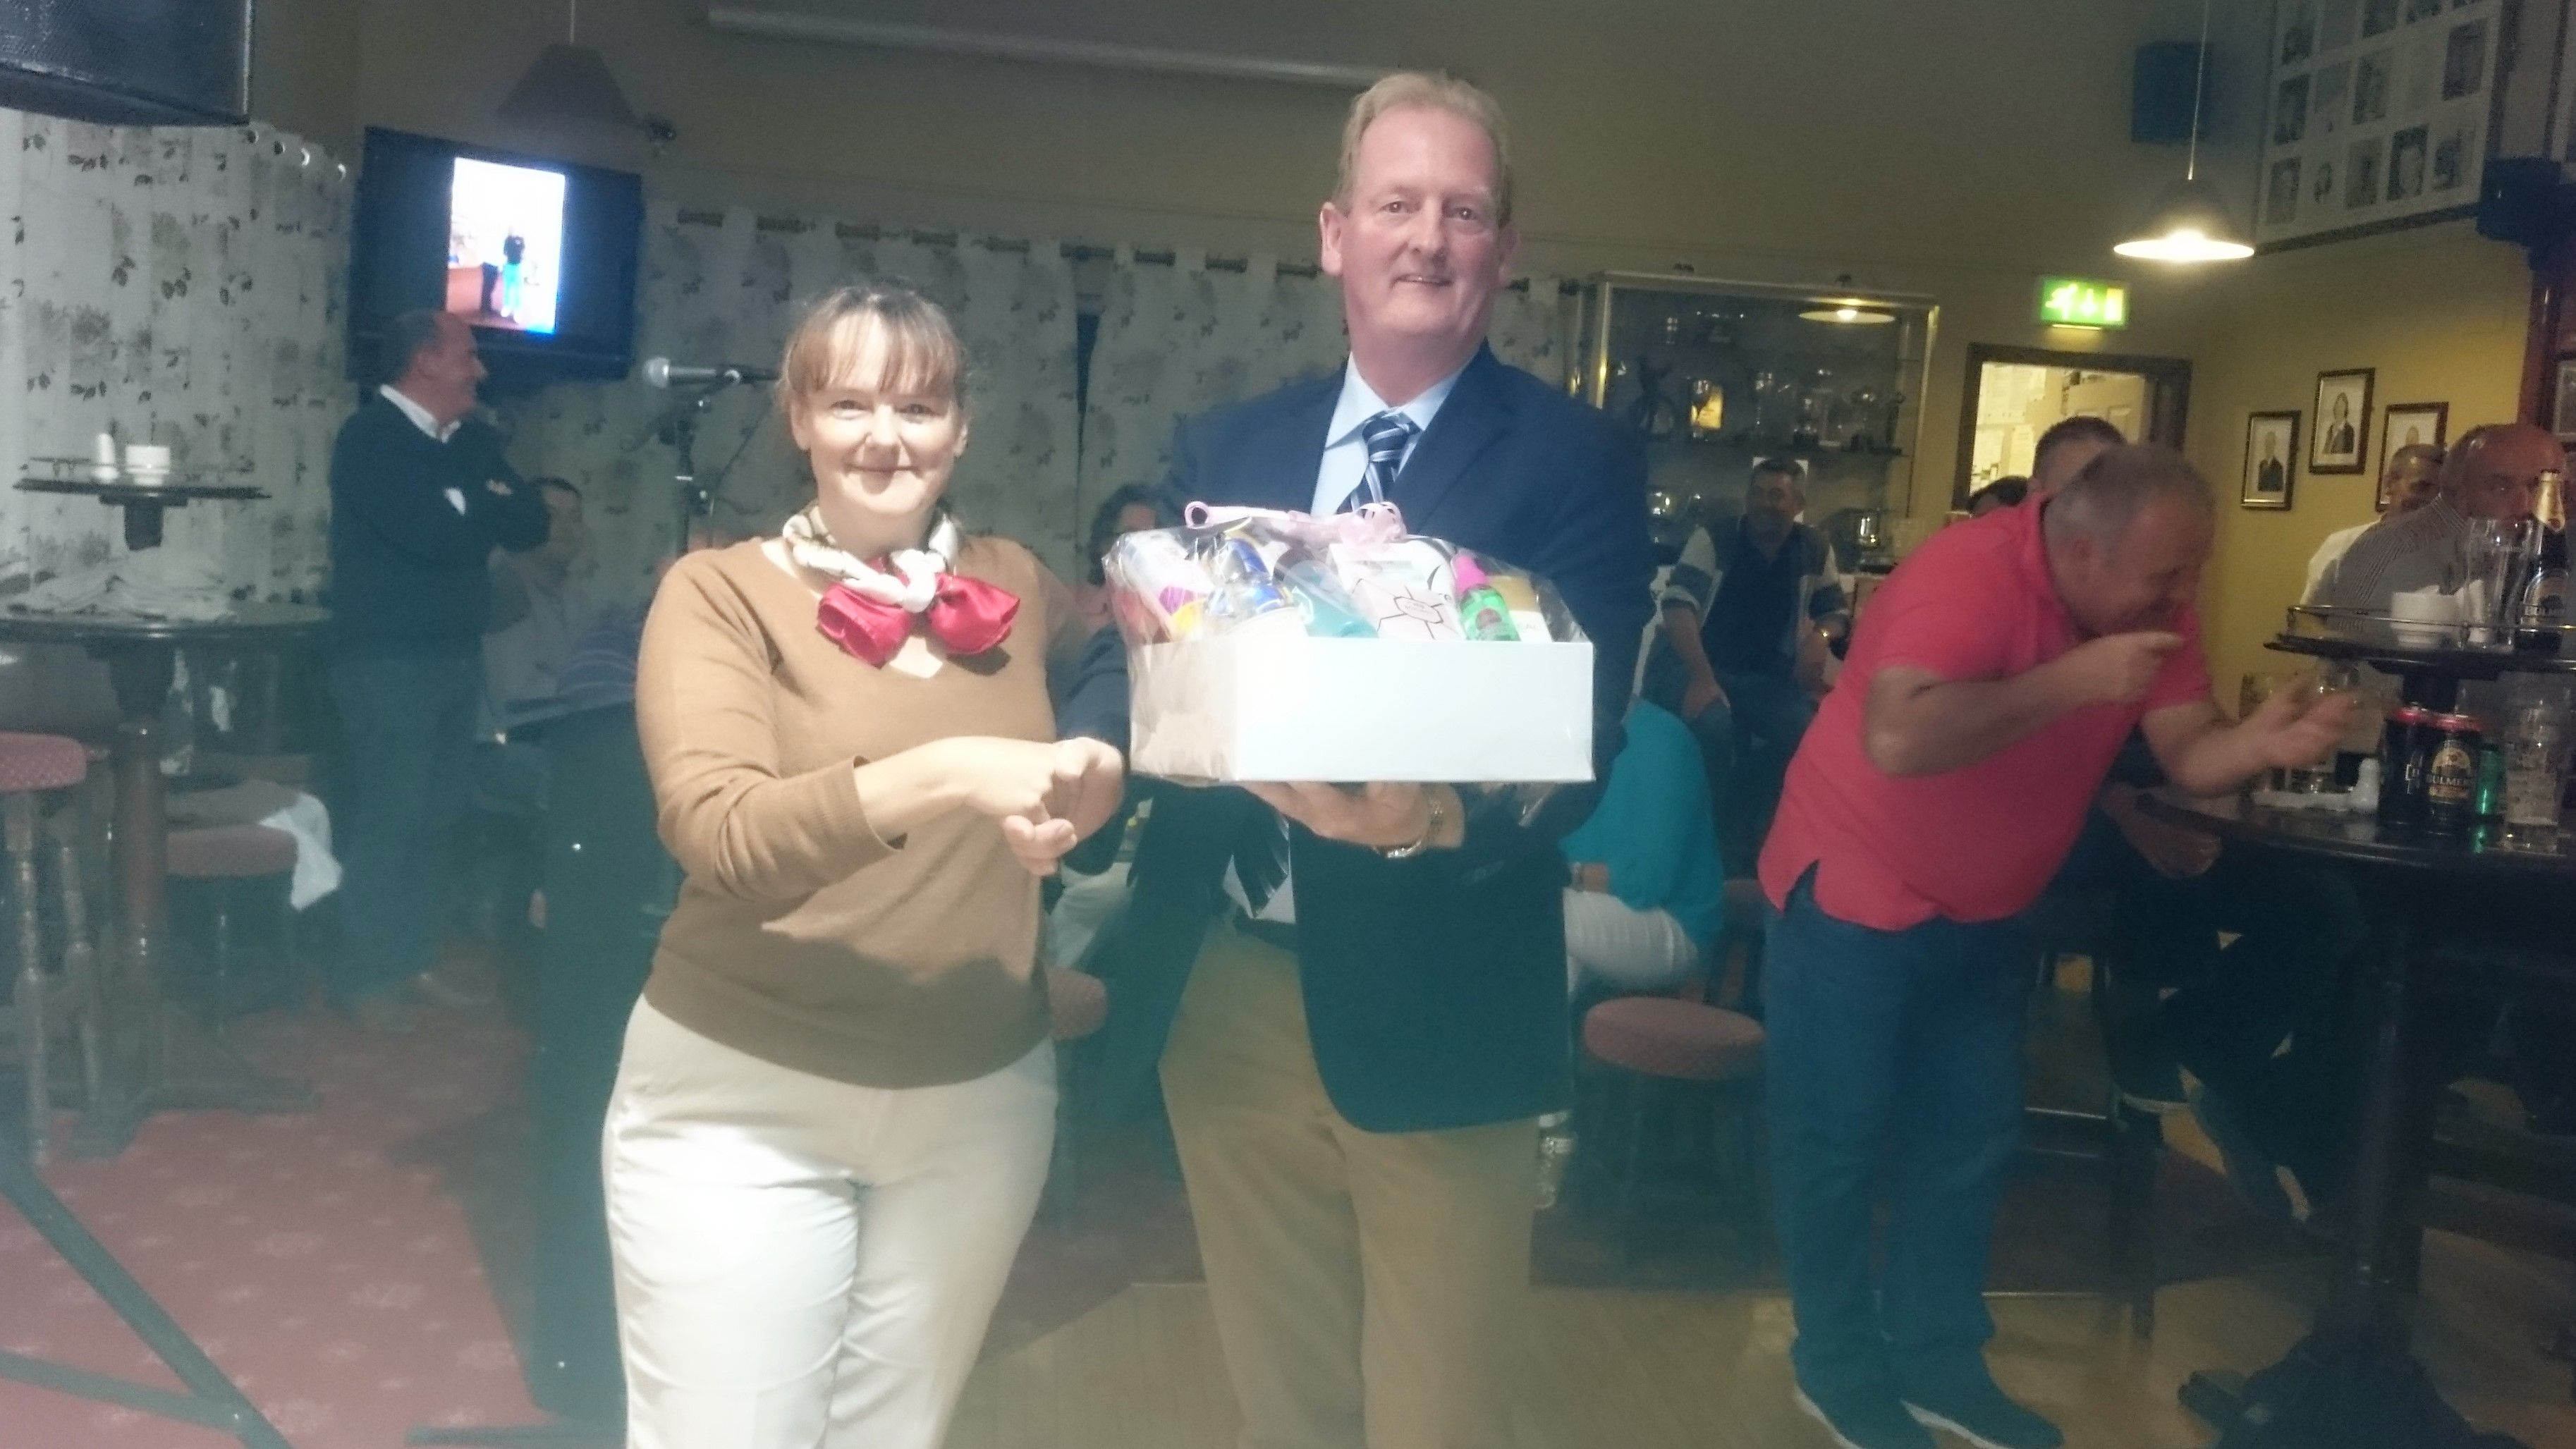 CAPTAIN'S PRIZE TO LADIES: Elizabeth Muldowney(THIRD), Captain Damien Duignan